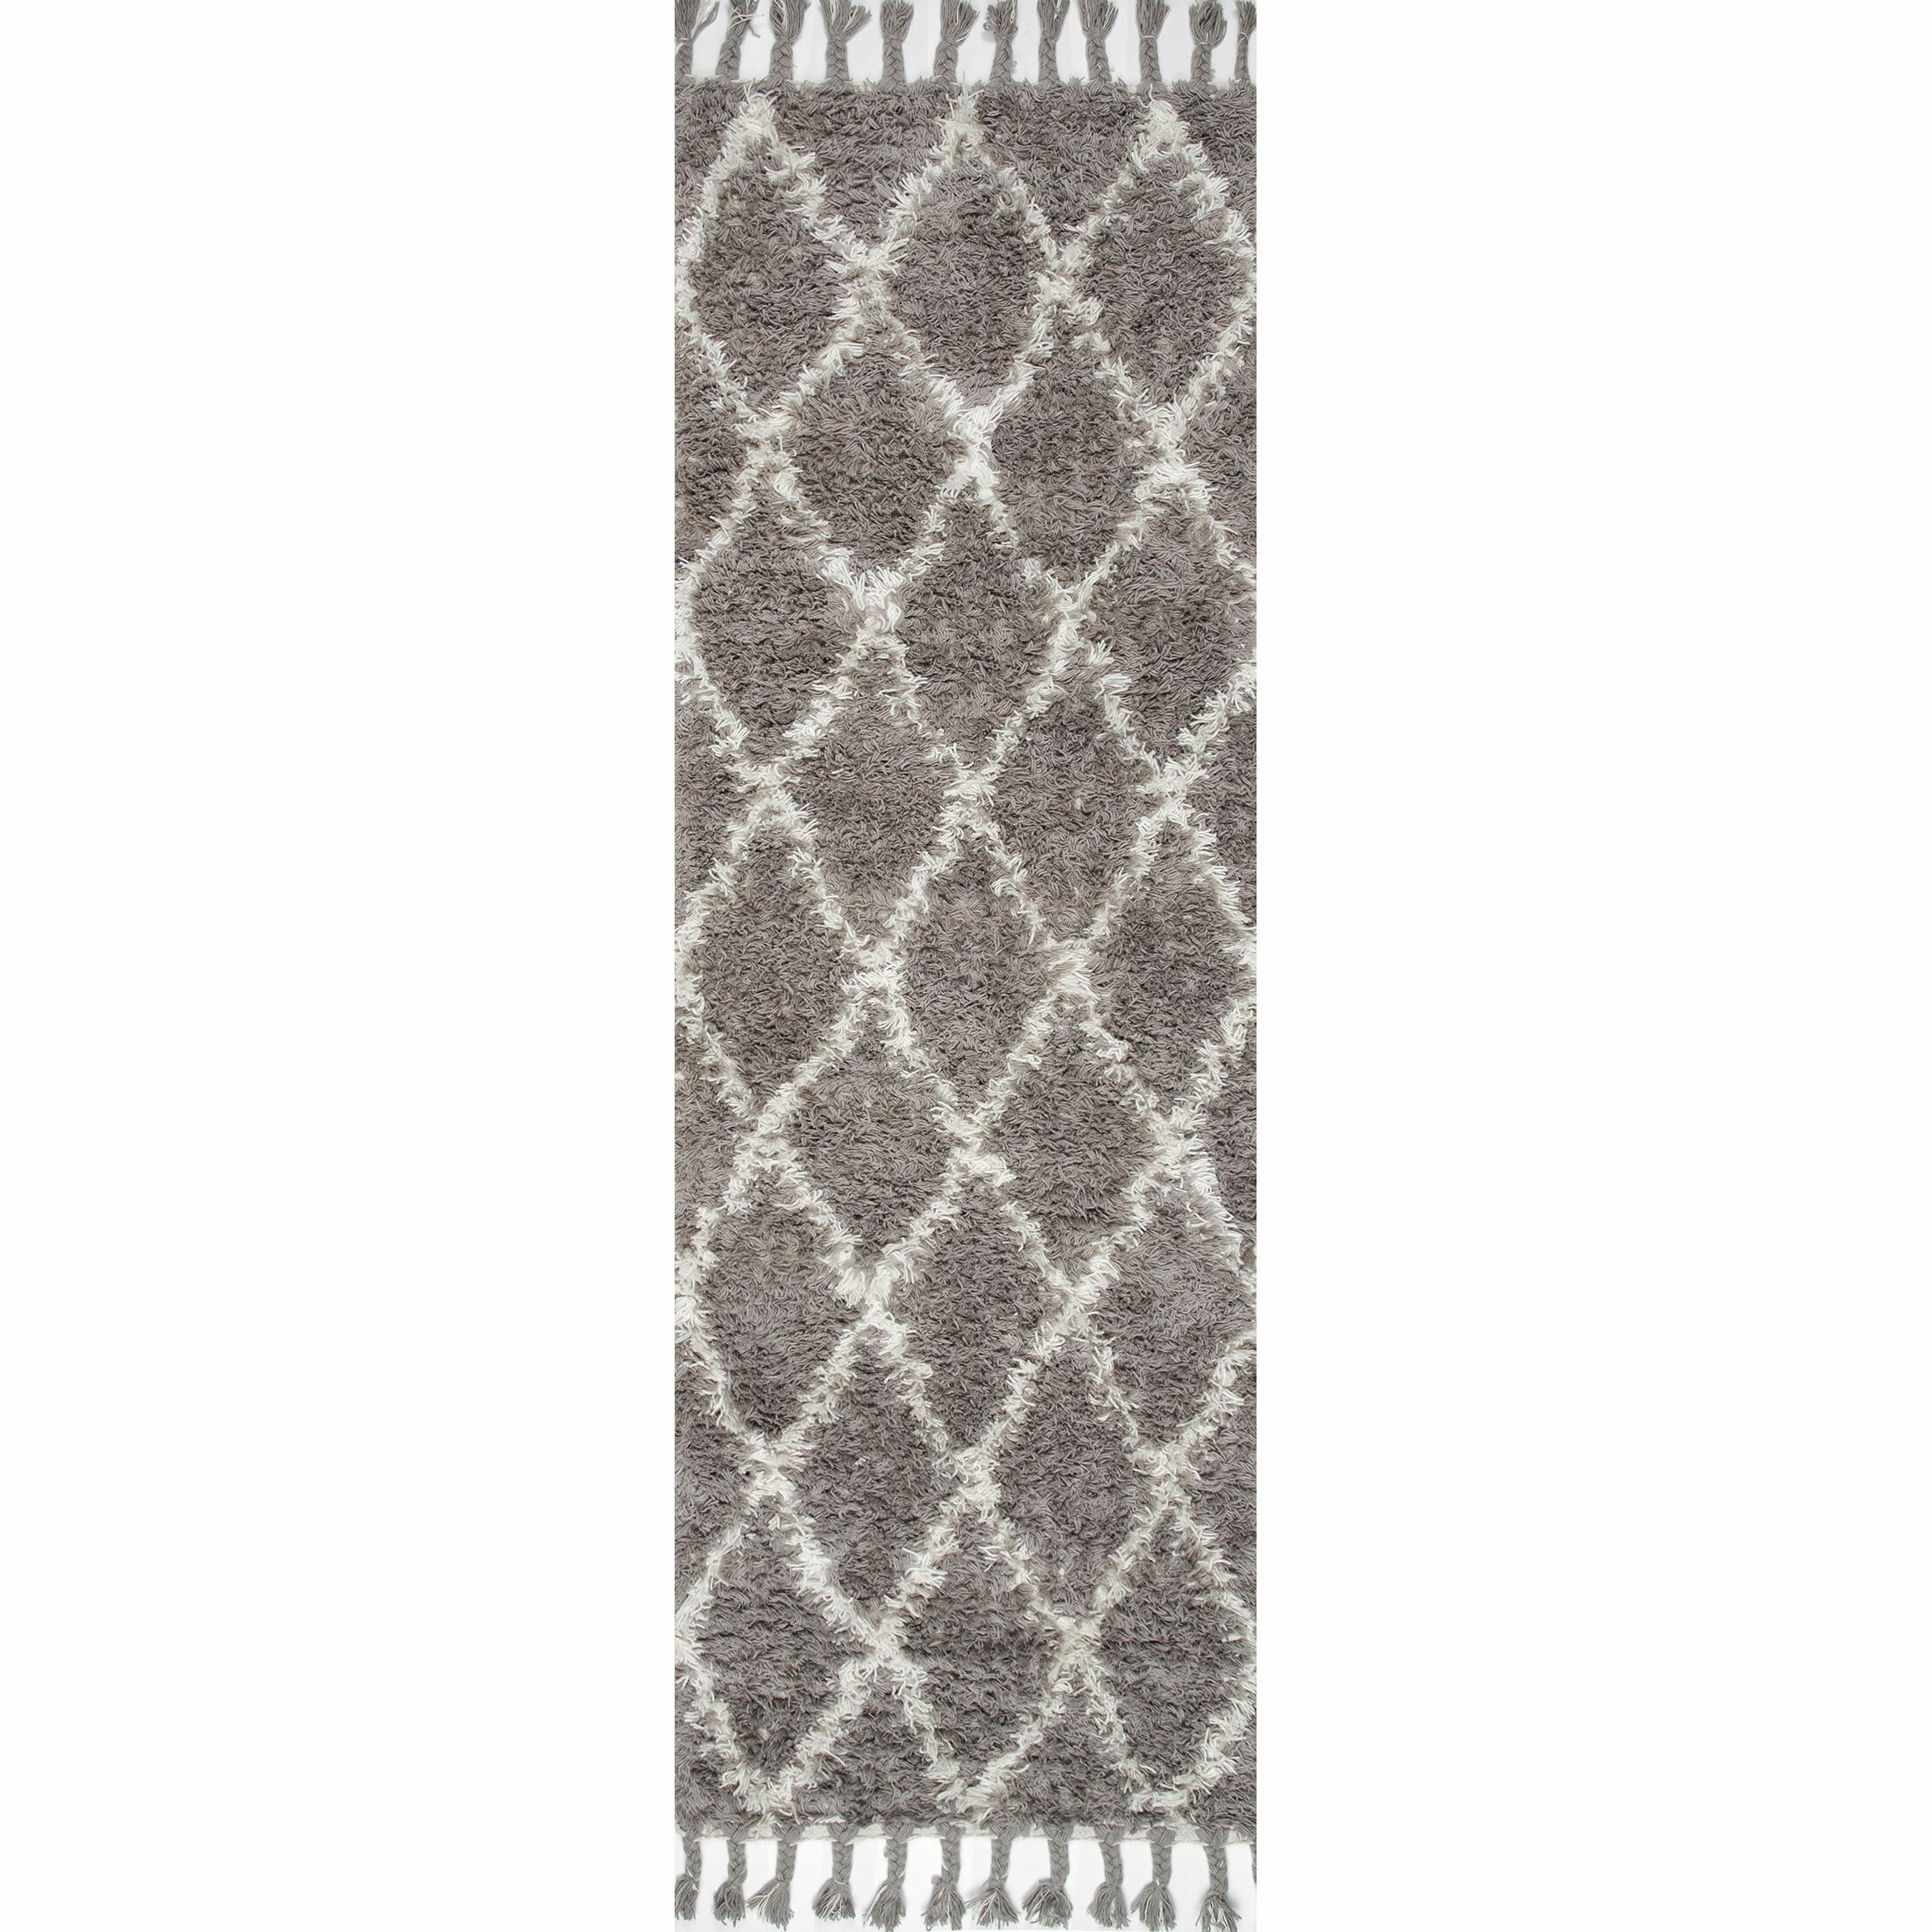 Caiden Hand-Knotted Gray Area Rug Rug Size: Runner 2'8